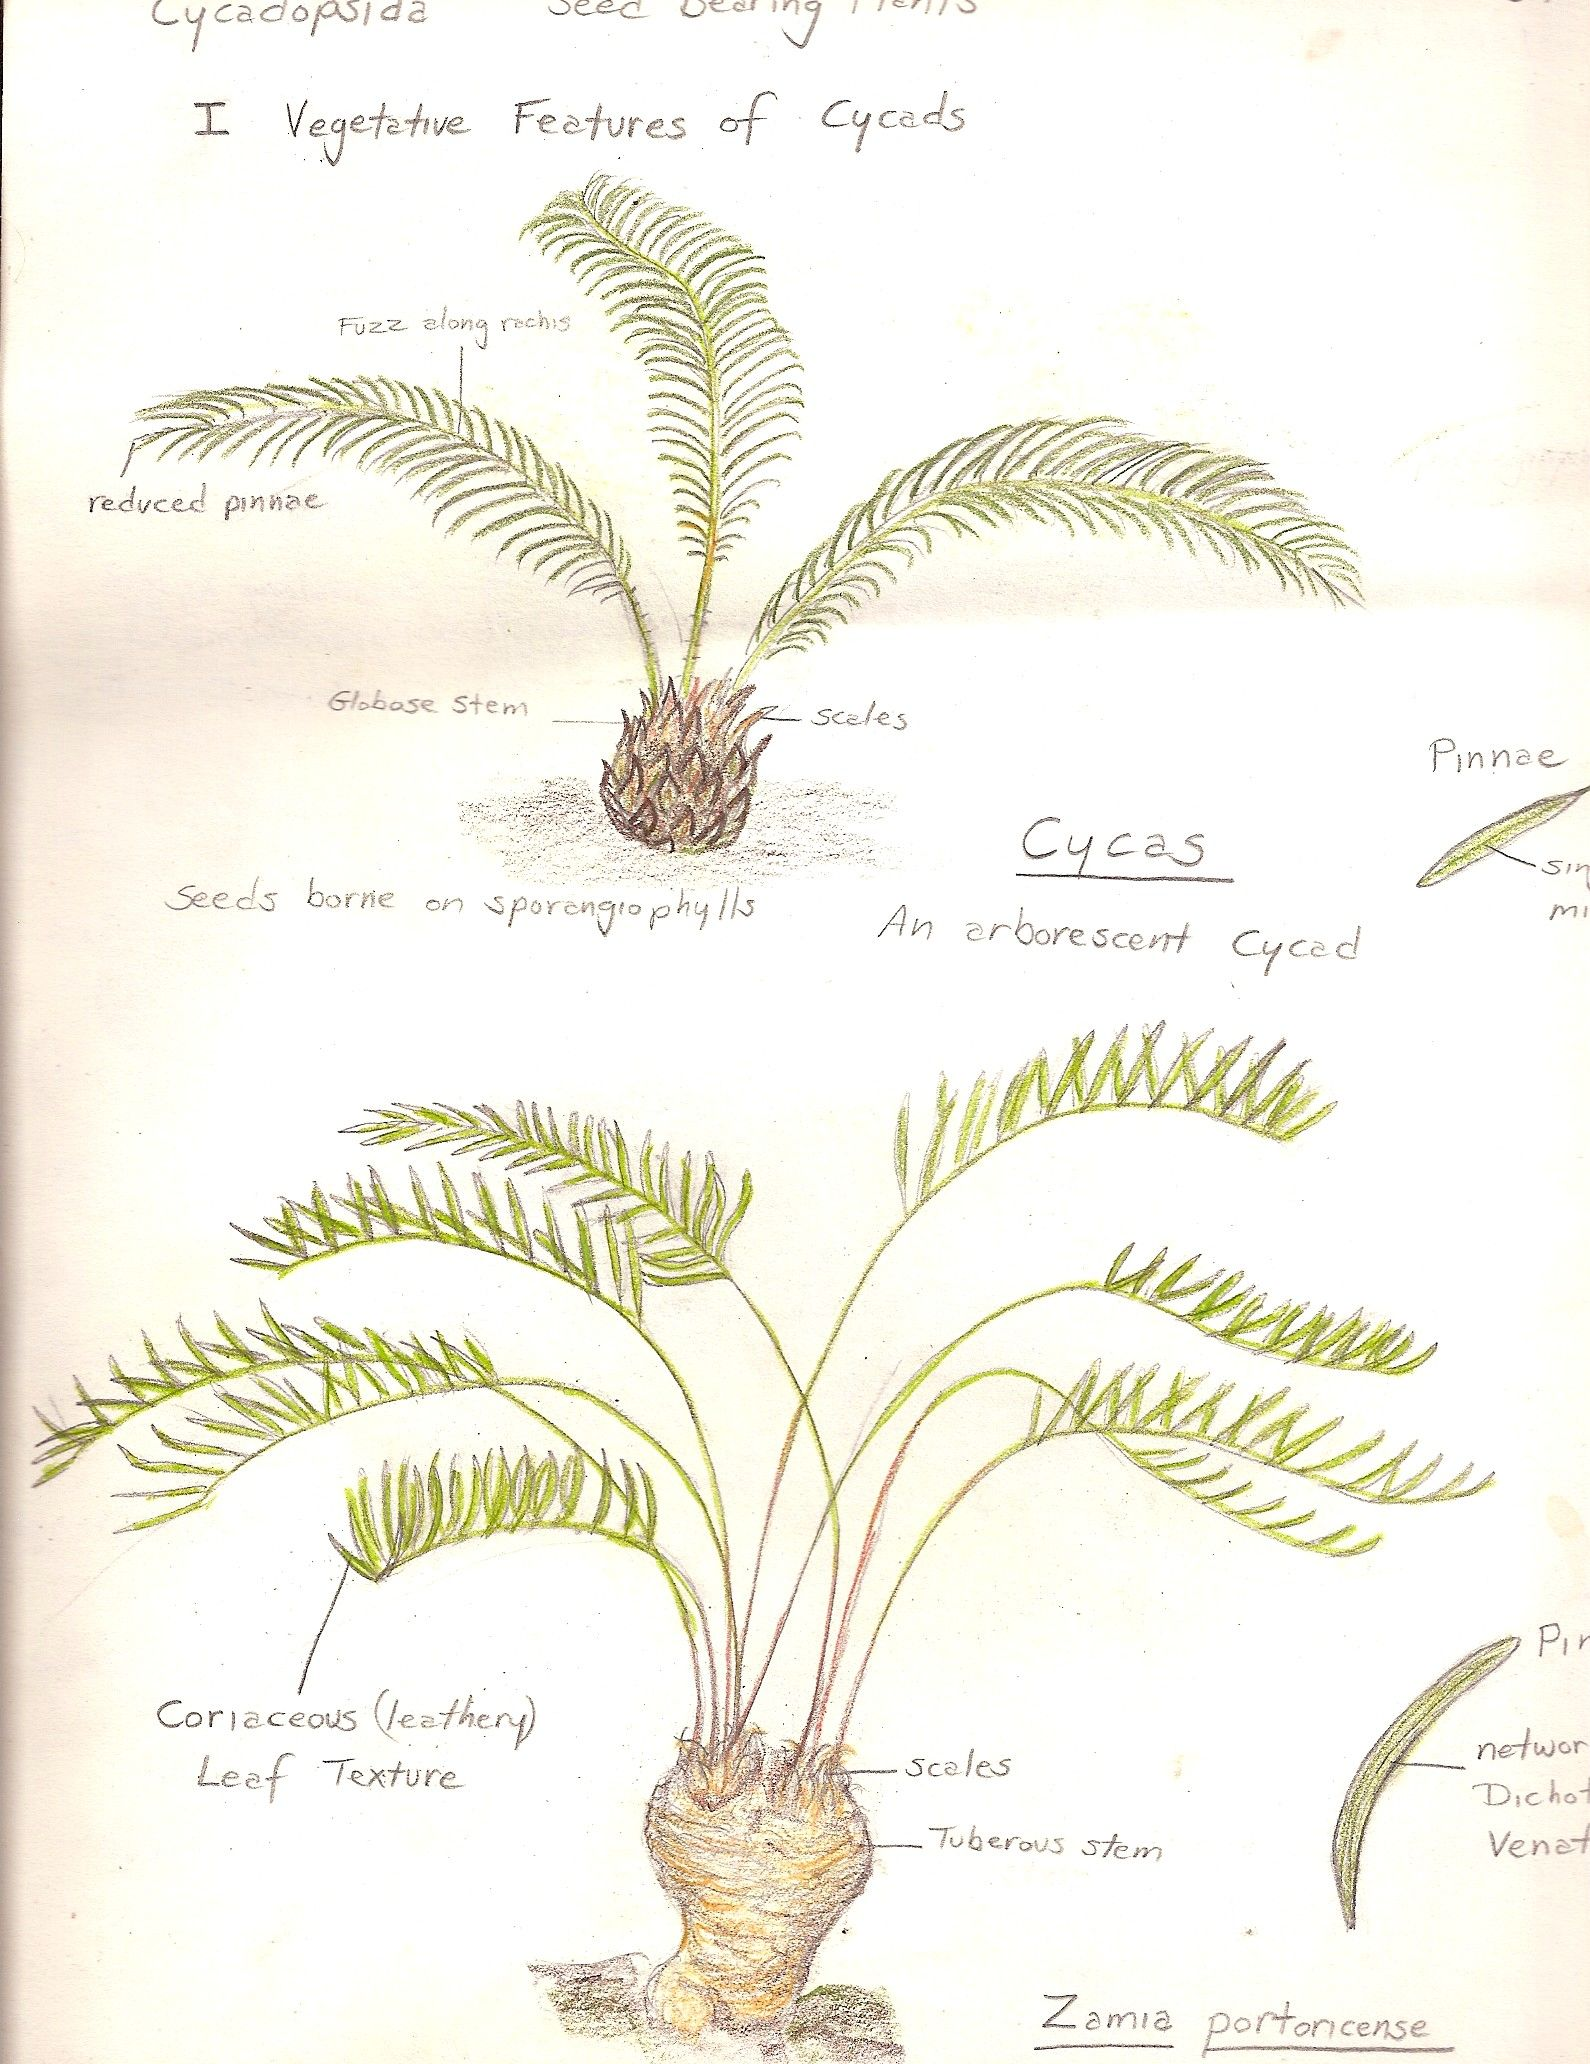 Cycadopsida Vegetative Features Of Seed Bearing Plants Cycas And